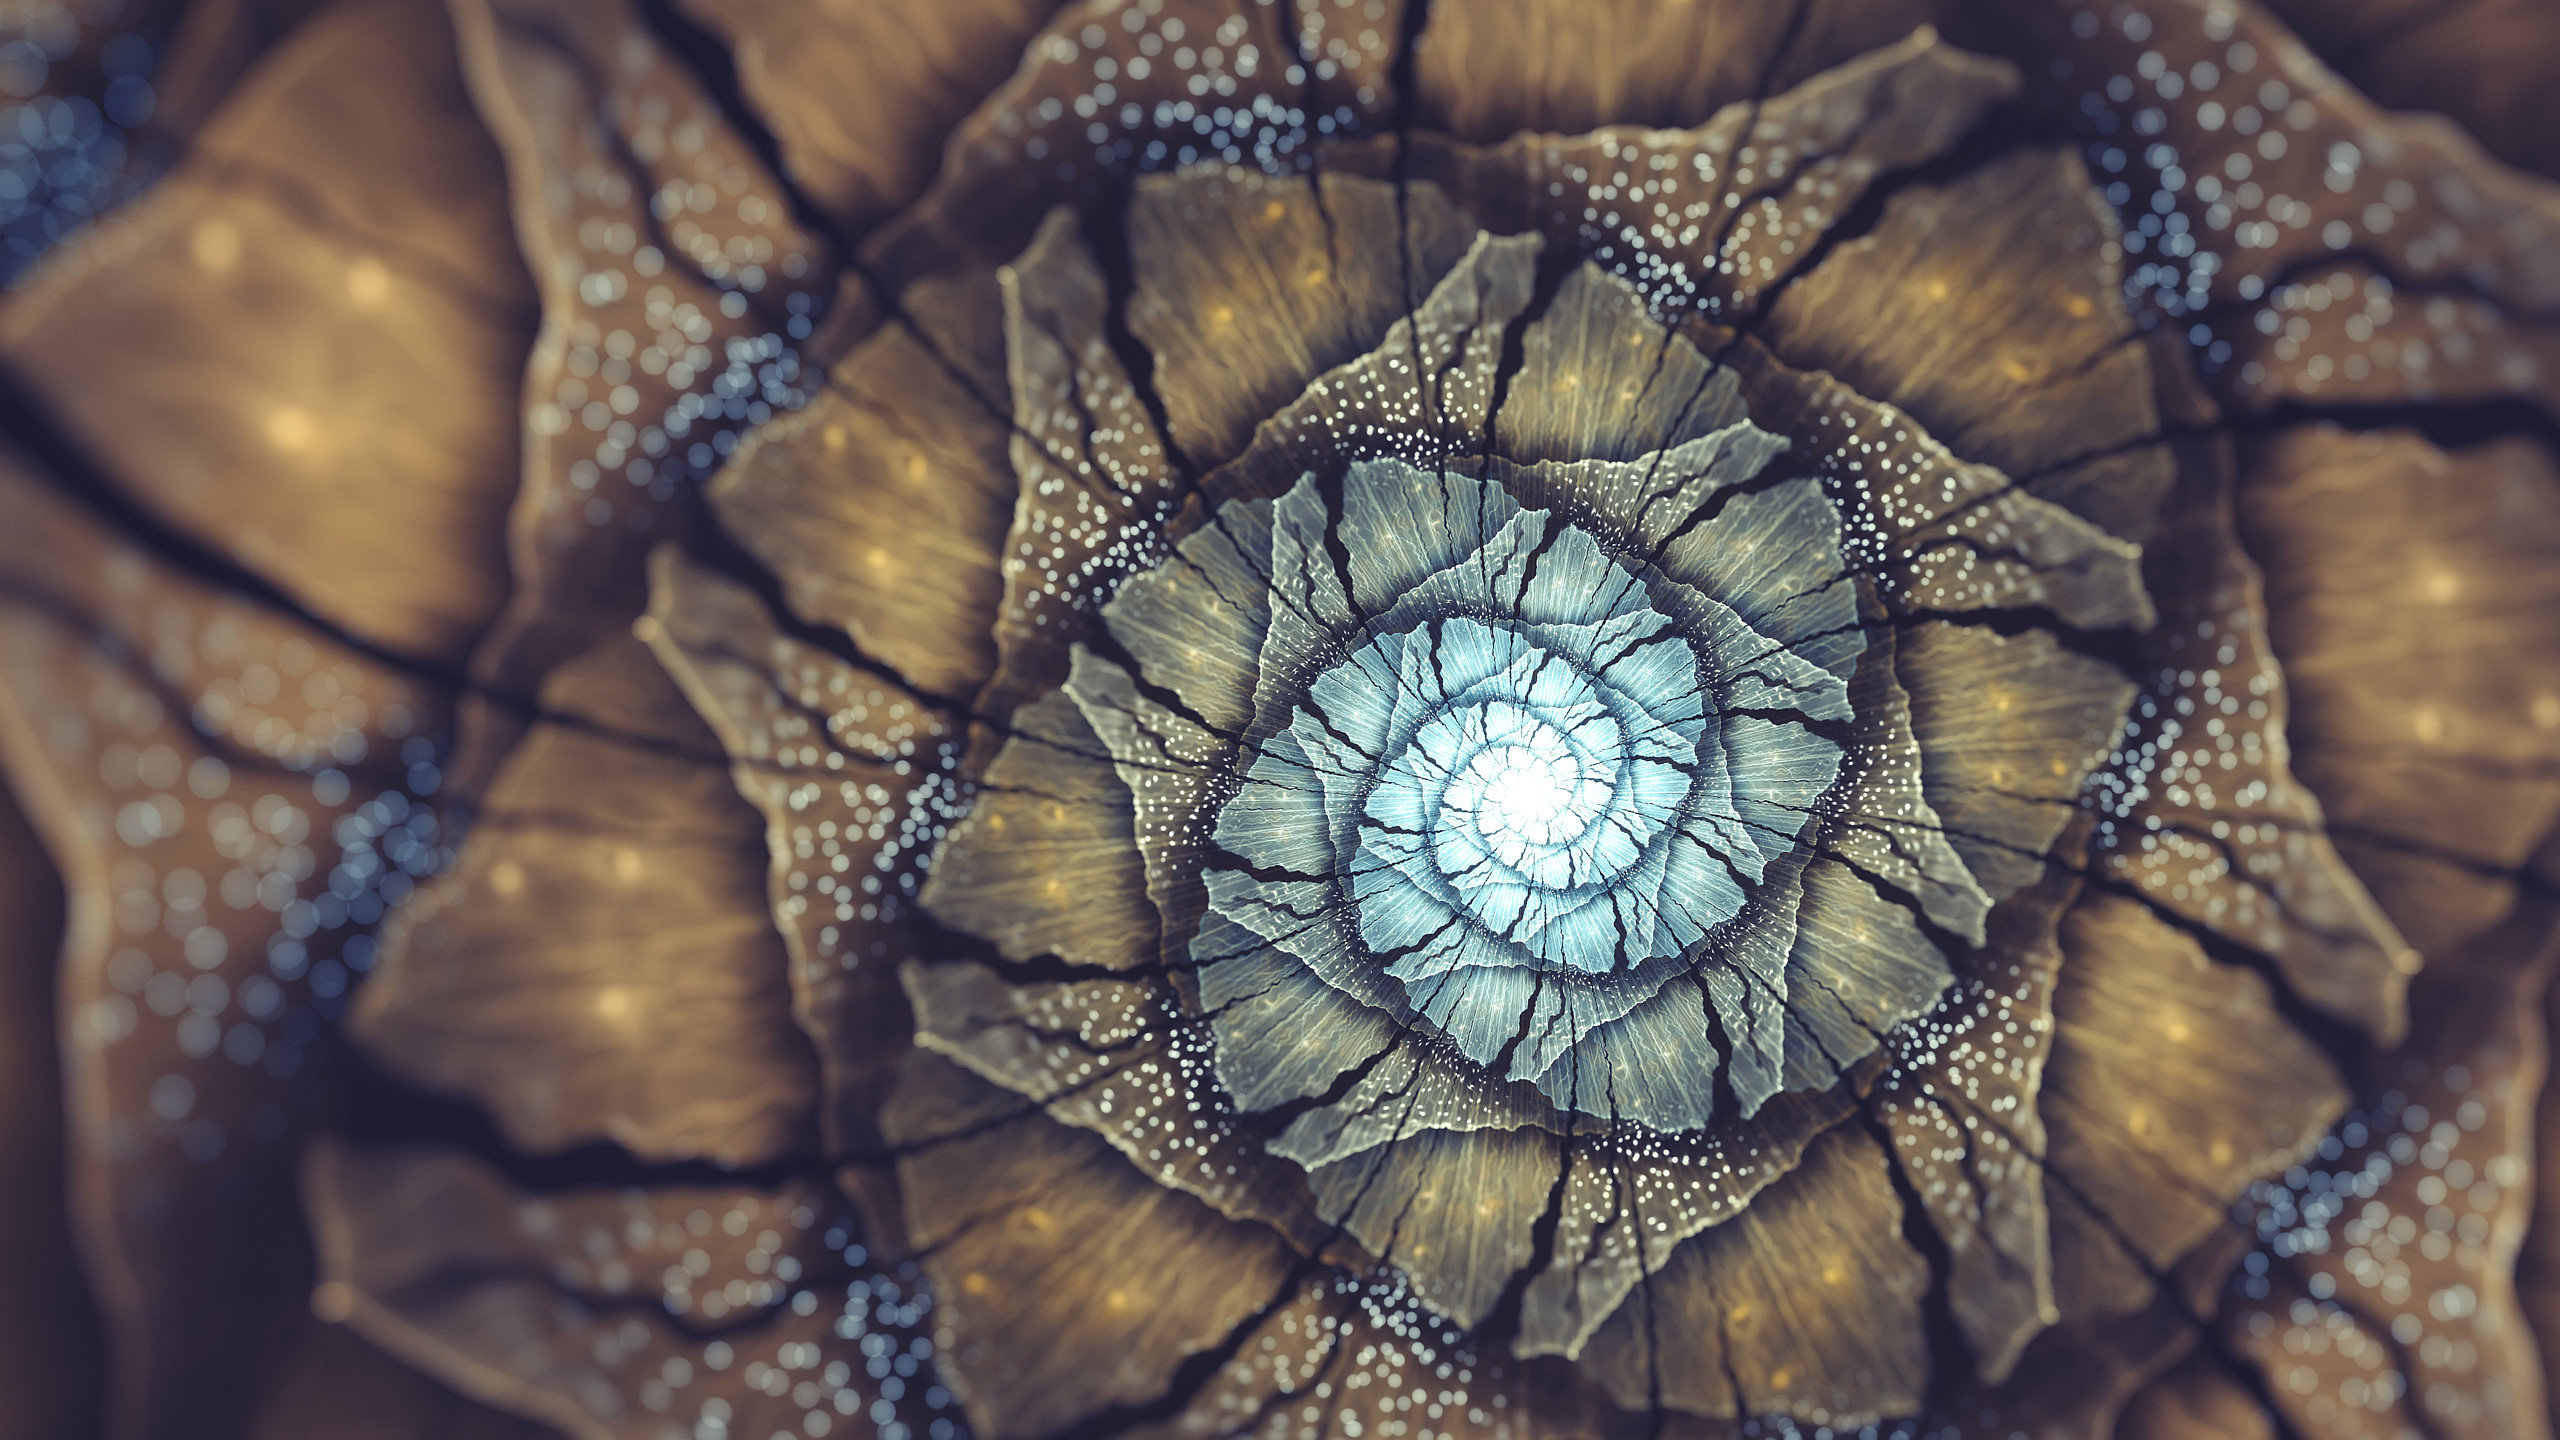 Free download Fractal wallpaper ID:94192 hd 2560x1440 for desktop